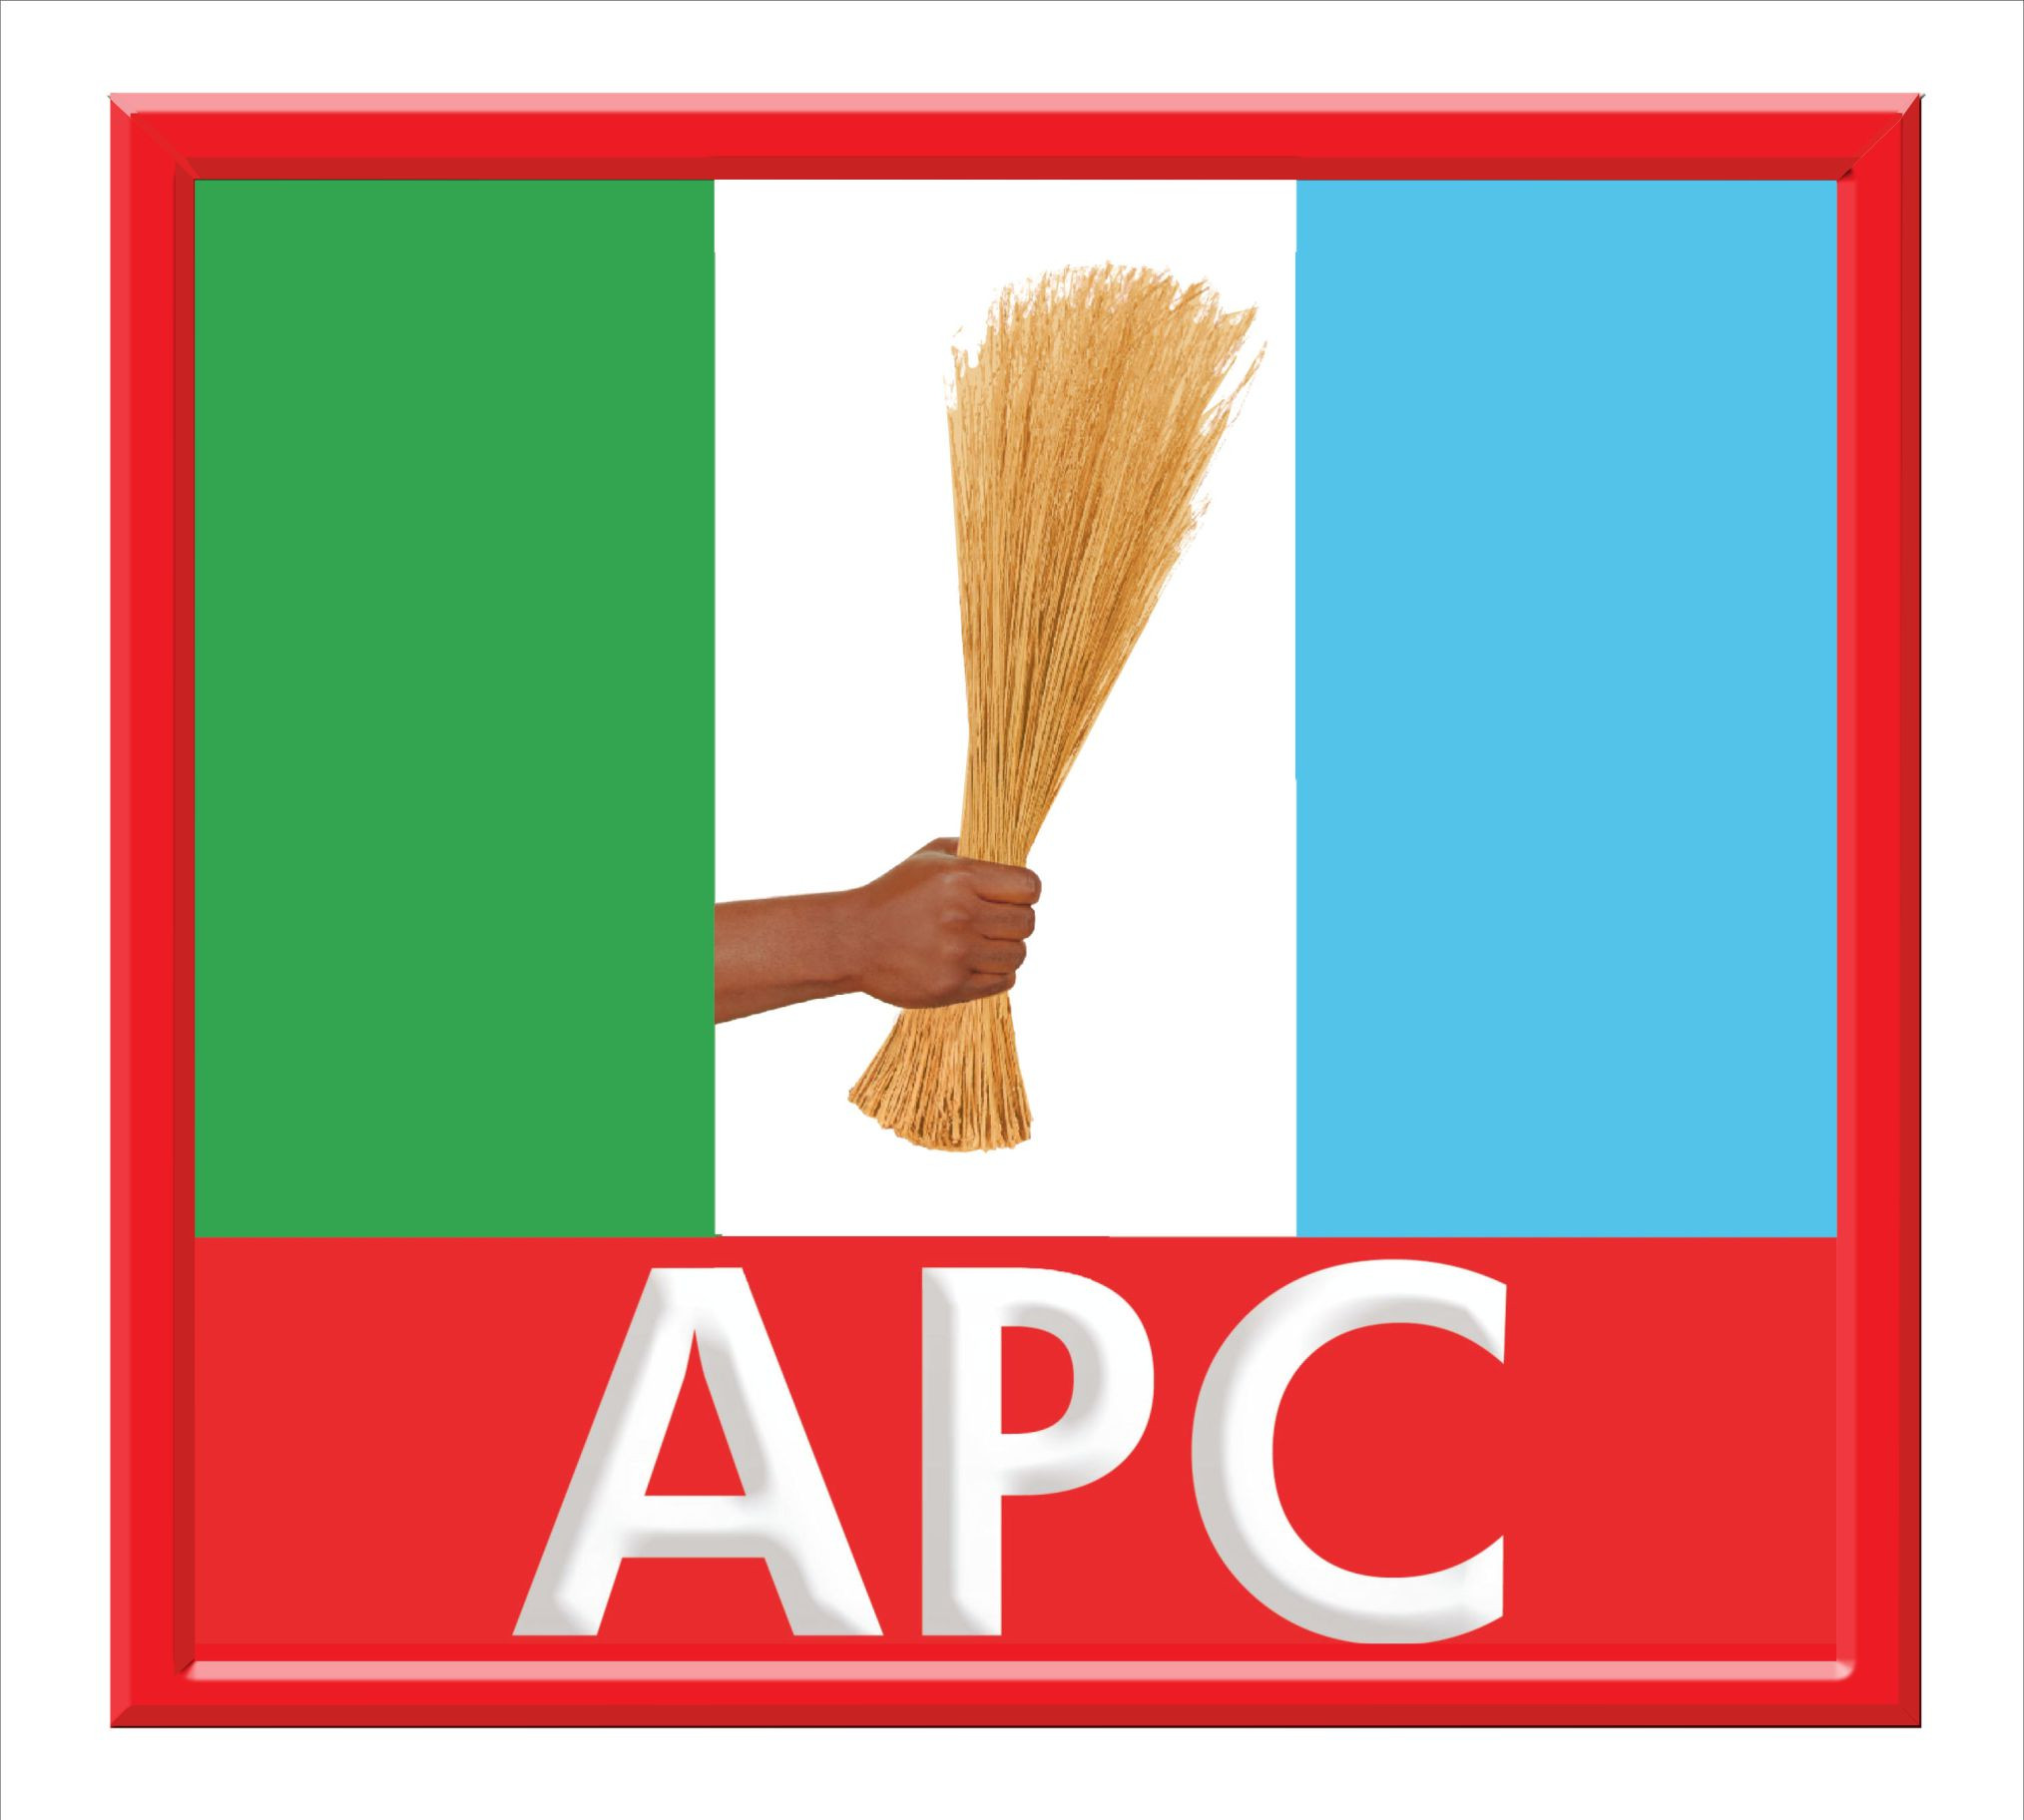 Our dear country is nowhere close to becoming a failed state - APC replies Financial Times